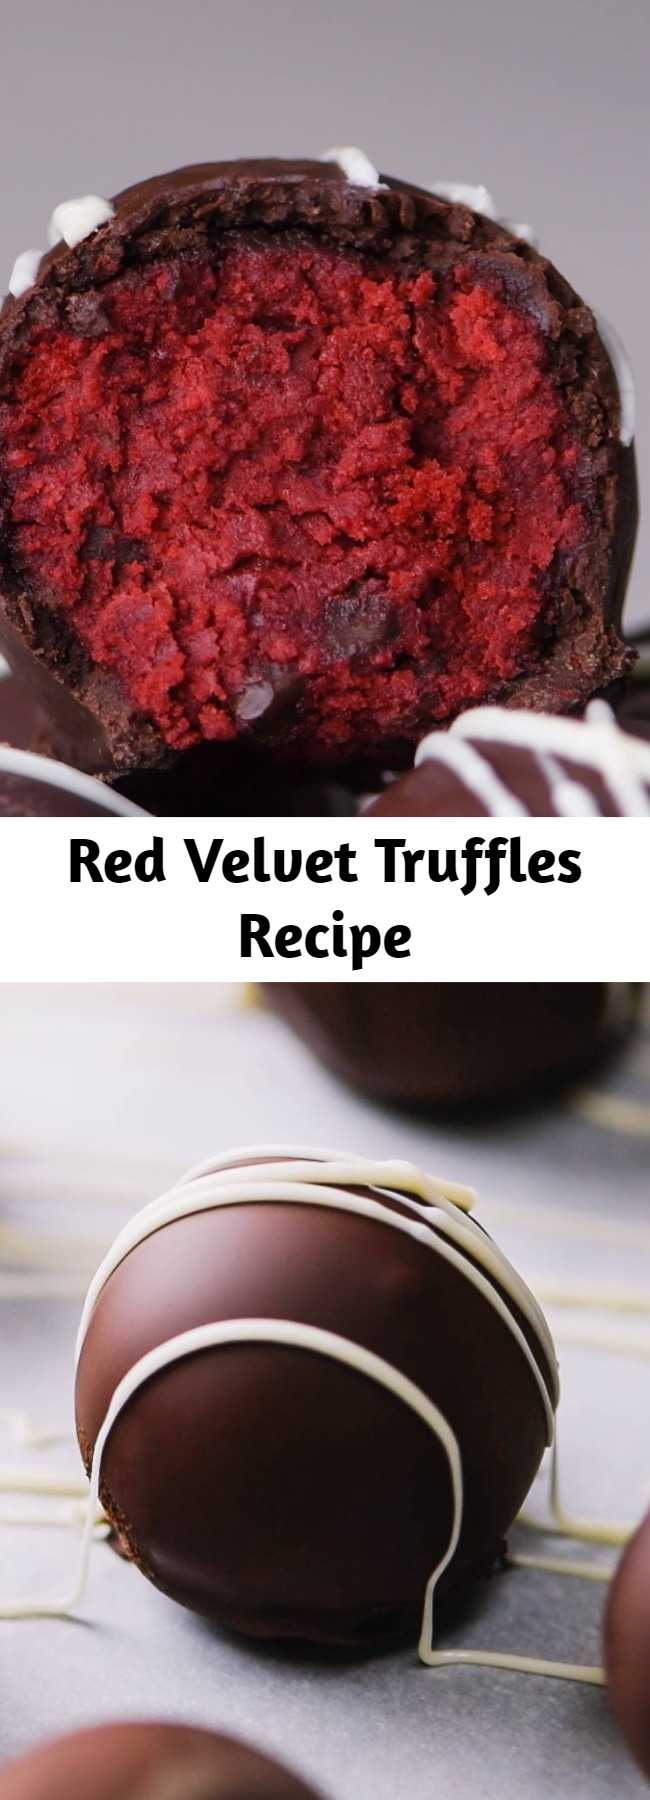 Red Velvet Truffles Recipe - This perfect delicious treat will keep your mouth watering! #desserts #chocolates #truffles